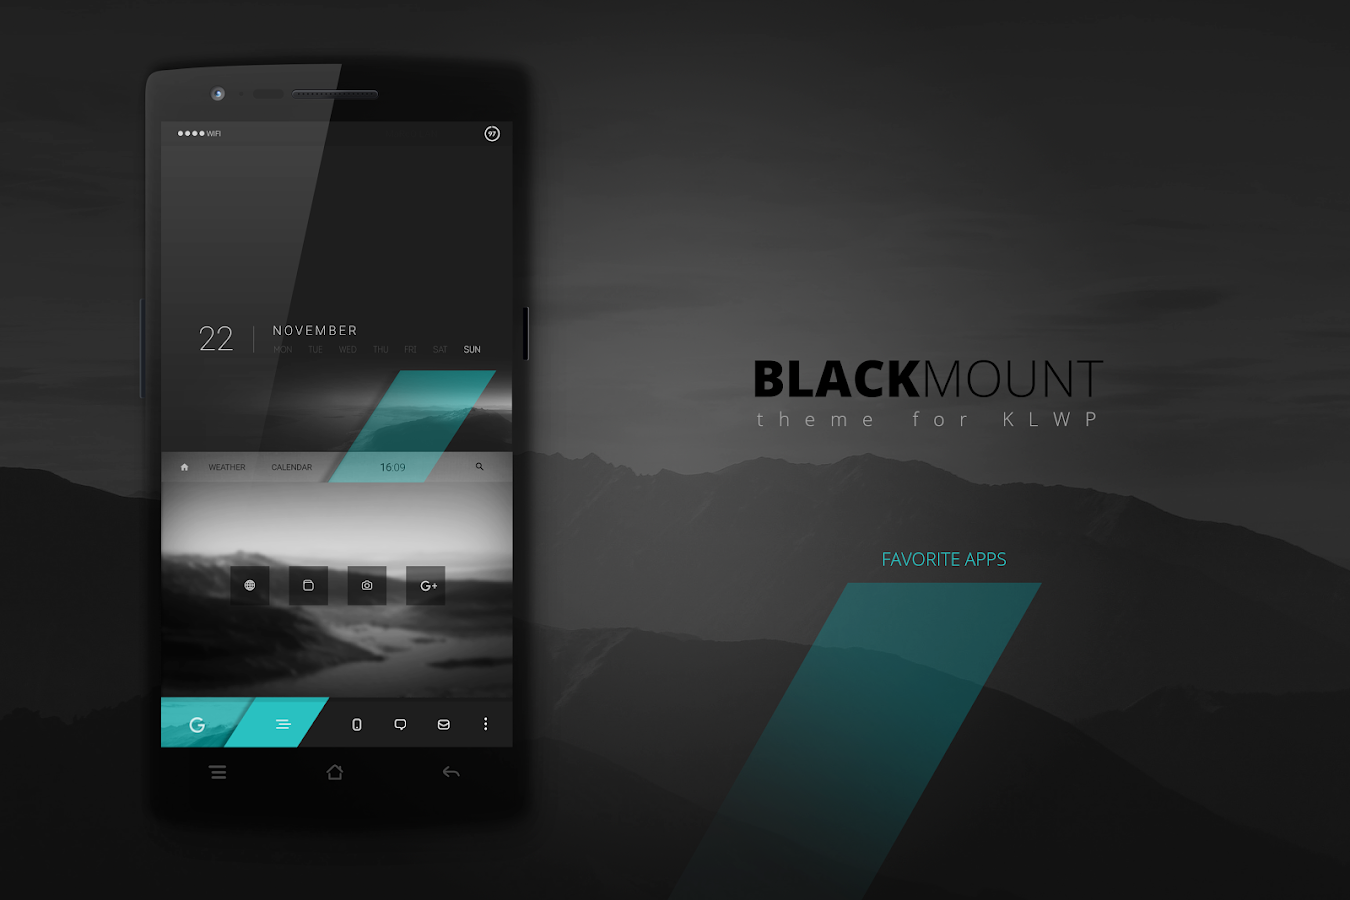 Blackmount theme for KLWP Screenshot 3